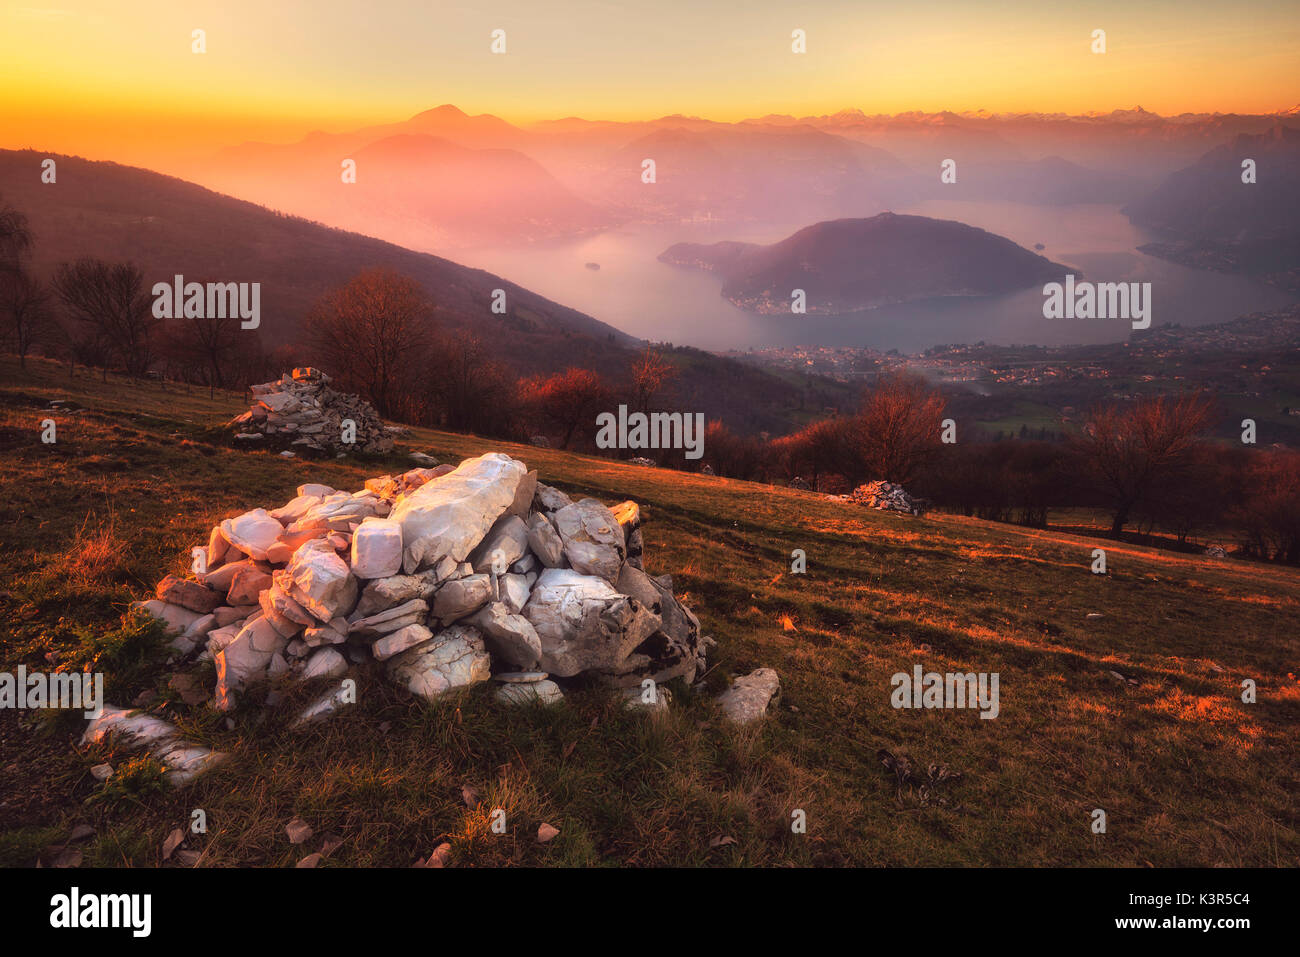 Iseo lake at sunset, Brescia province, Italy, Lombardy district. - Stock Image